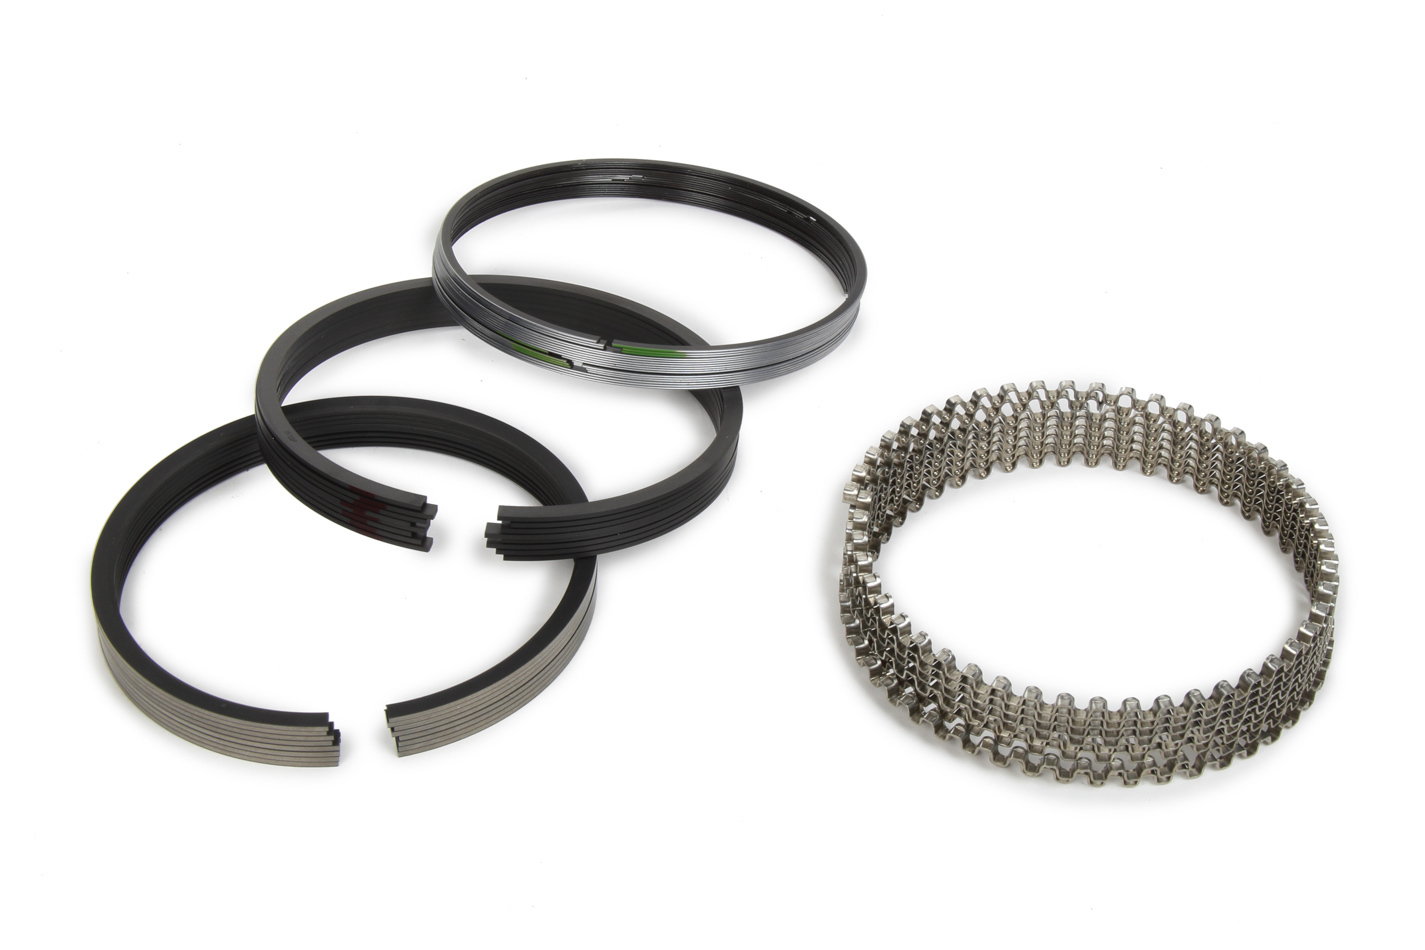 Michigan 77 315-0005.045 Piston Rings, 4.040 in Bore, File Fit, 1/16 x 1/16 x 3/16 in Thick, Low Tension, Plasma Moly, 8 Cylinder, Kit